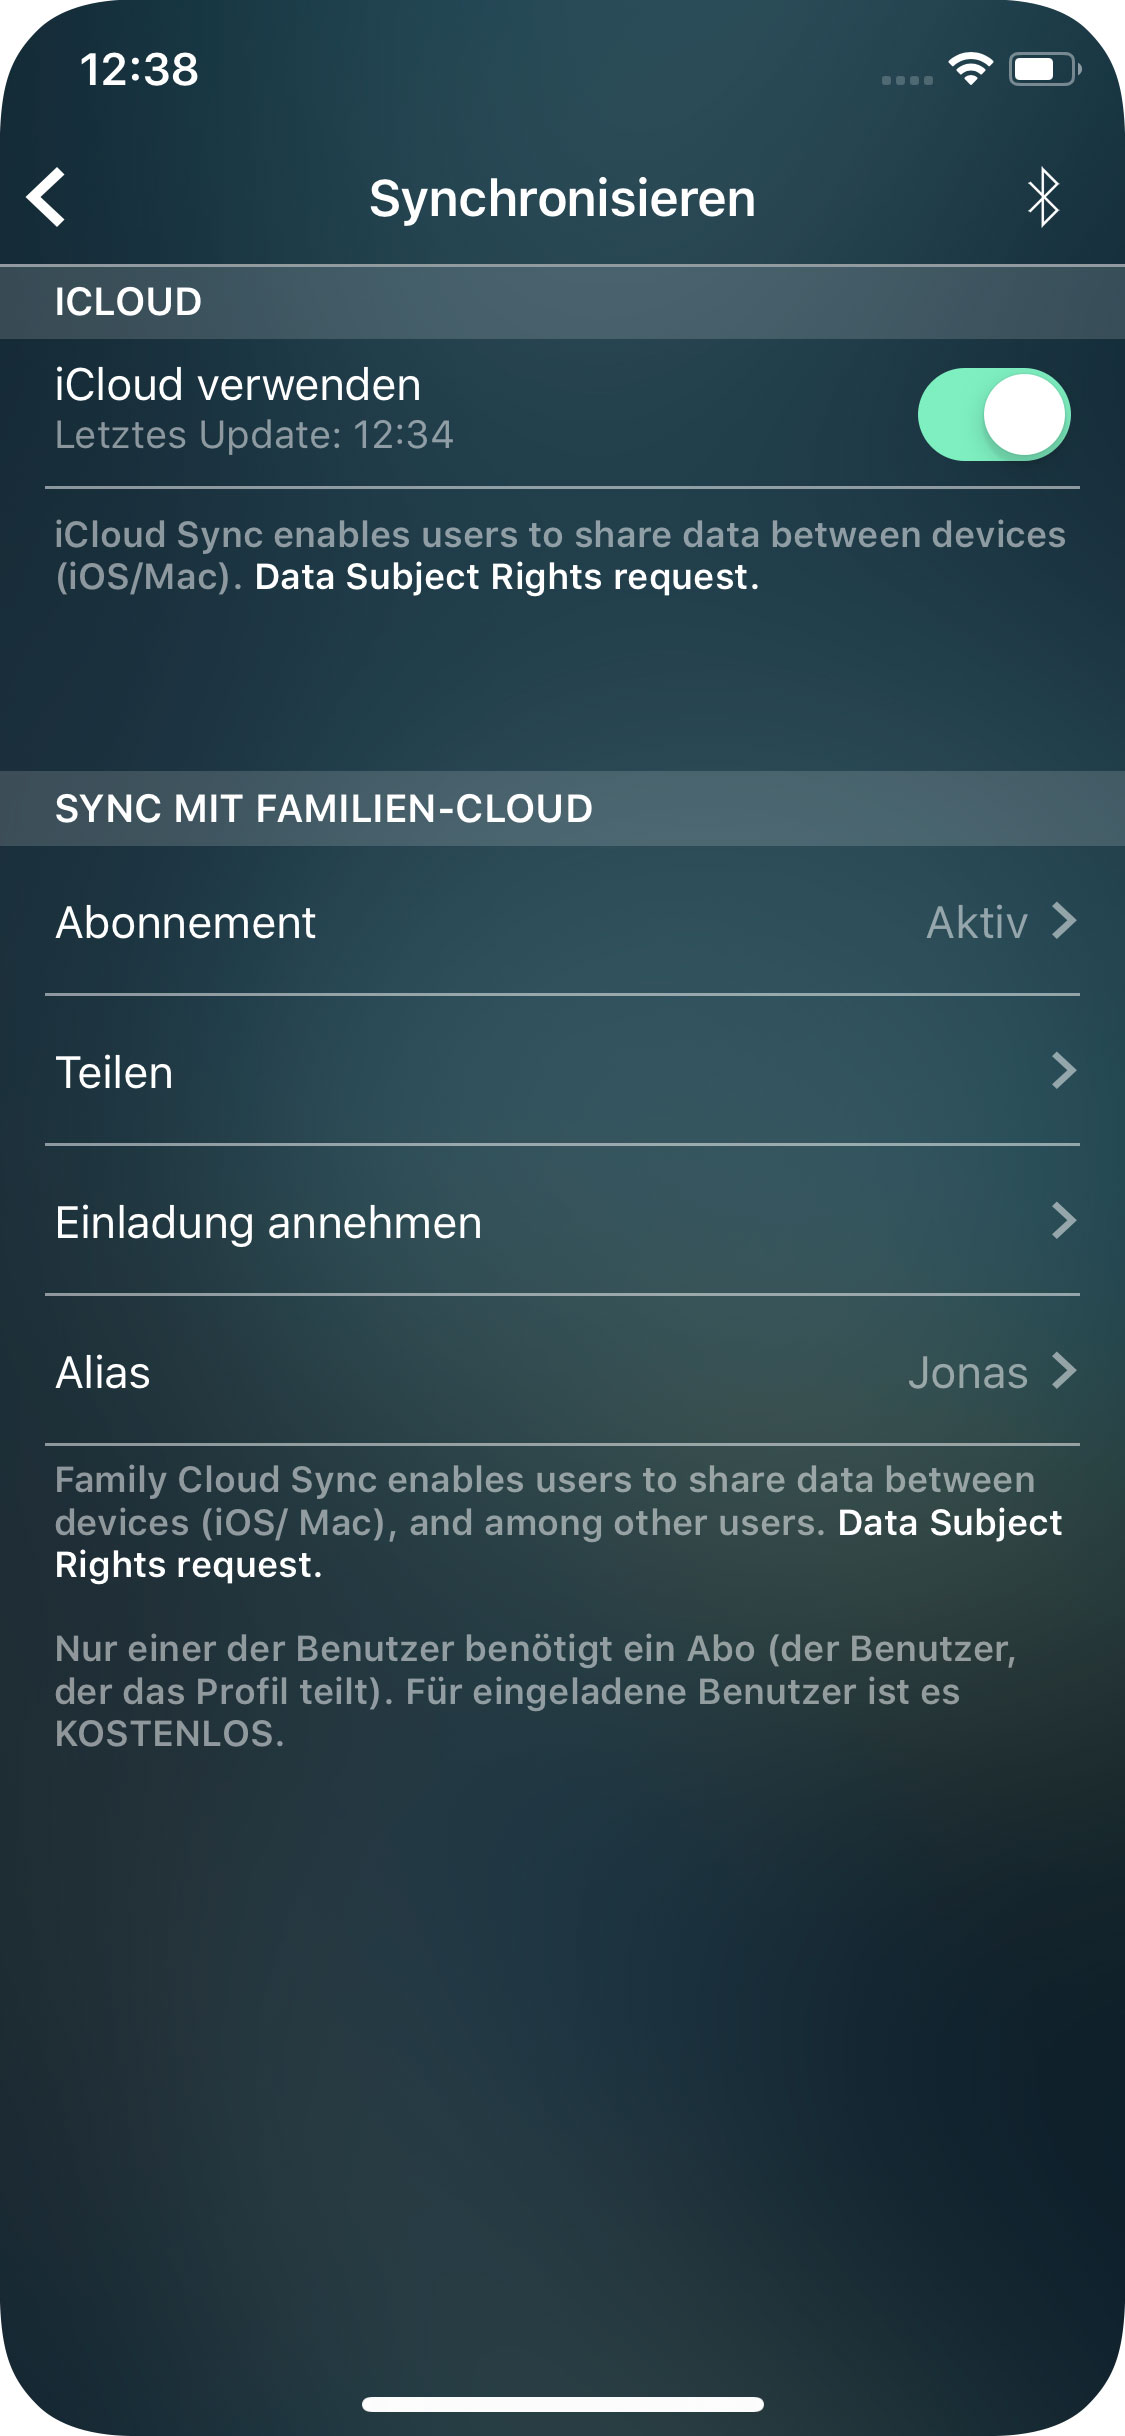 Money Pro - iCloud Synchronisierung (iOS, Mac) - iPhone